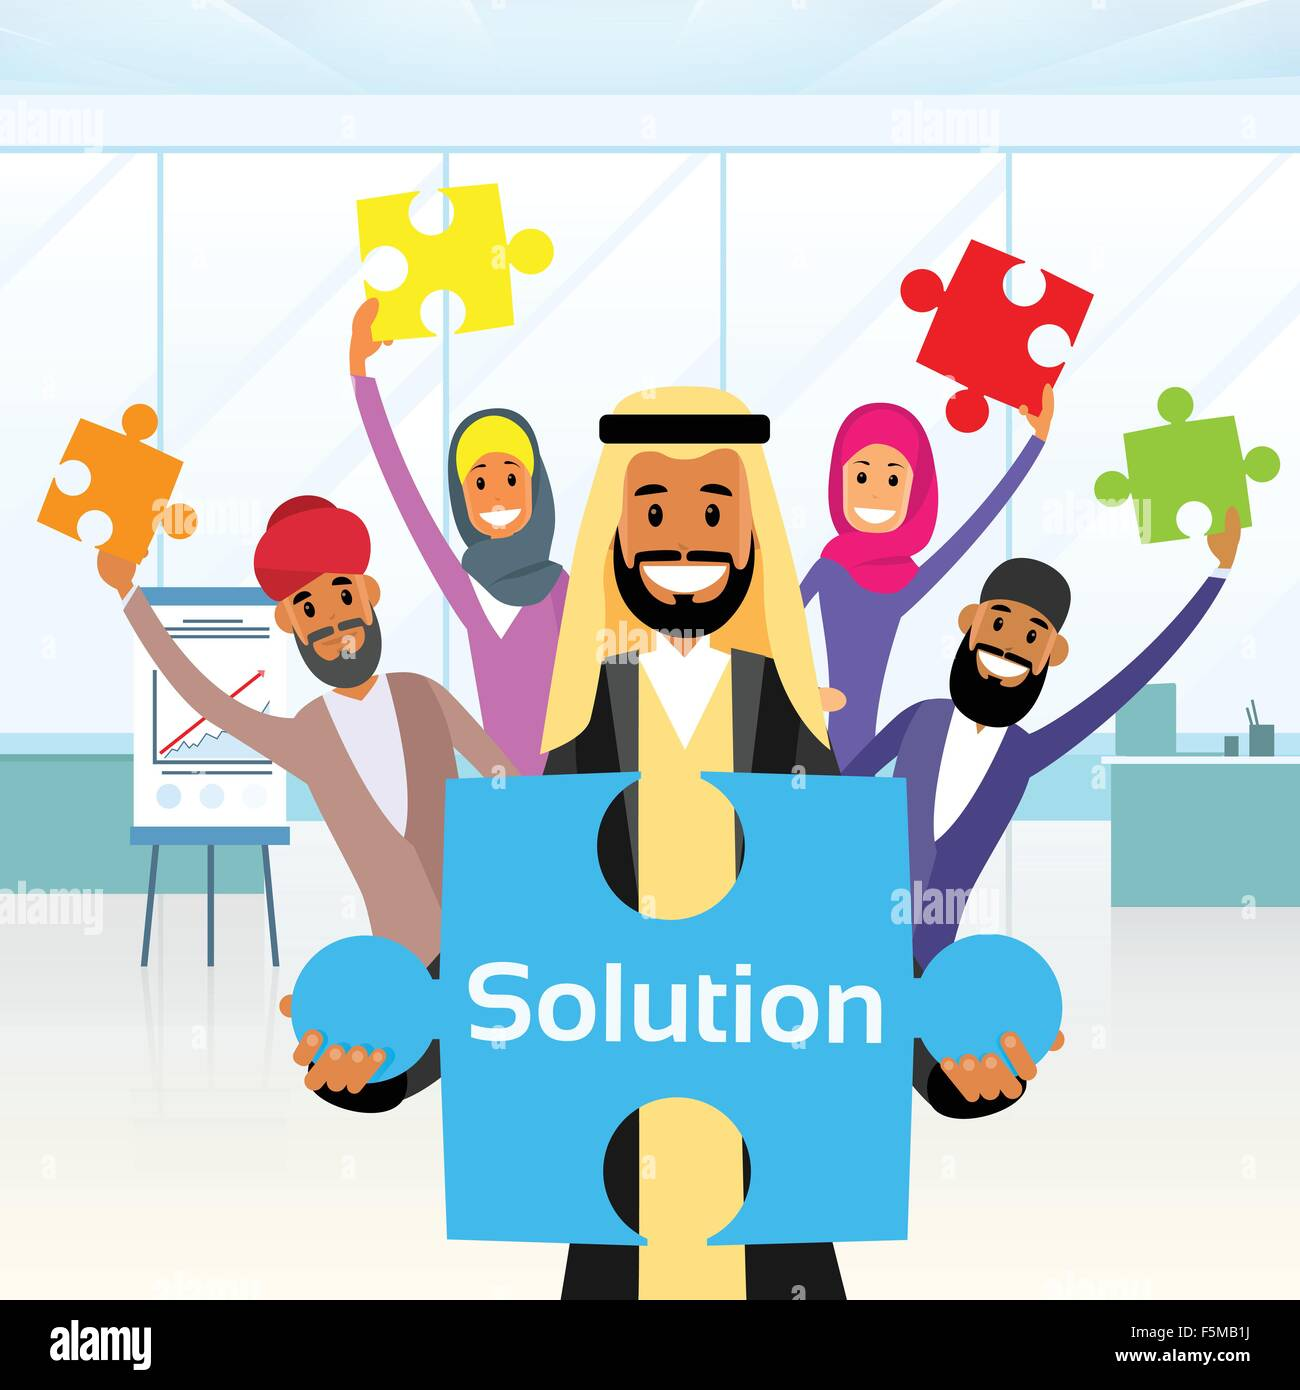 http://c8.alamy.com/comp/F5MB1J/business-people-arab-group-hold-jigsaw-puzzle-piece-concept-of-solution-F5MB1J.jpg